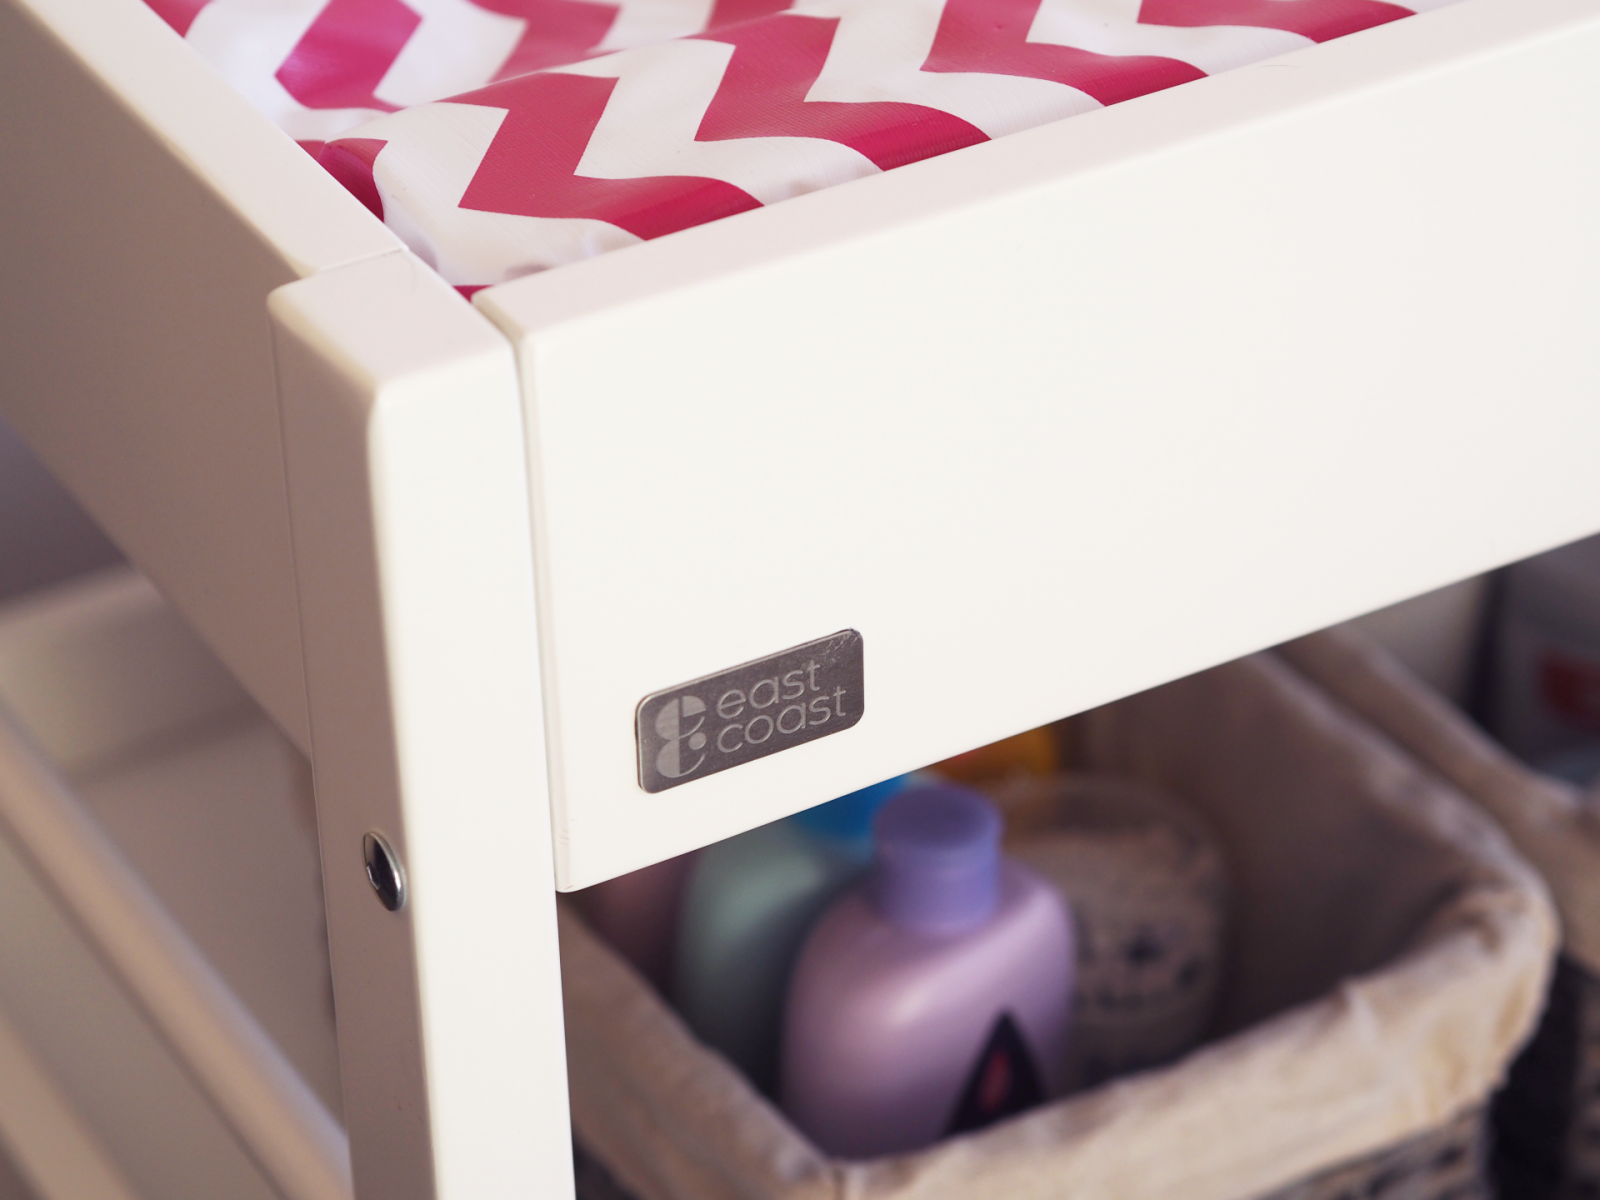 Whats on my changing table?